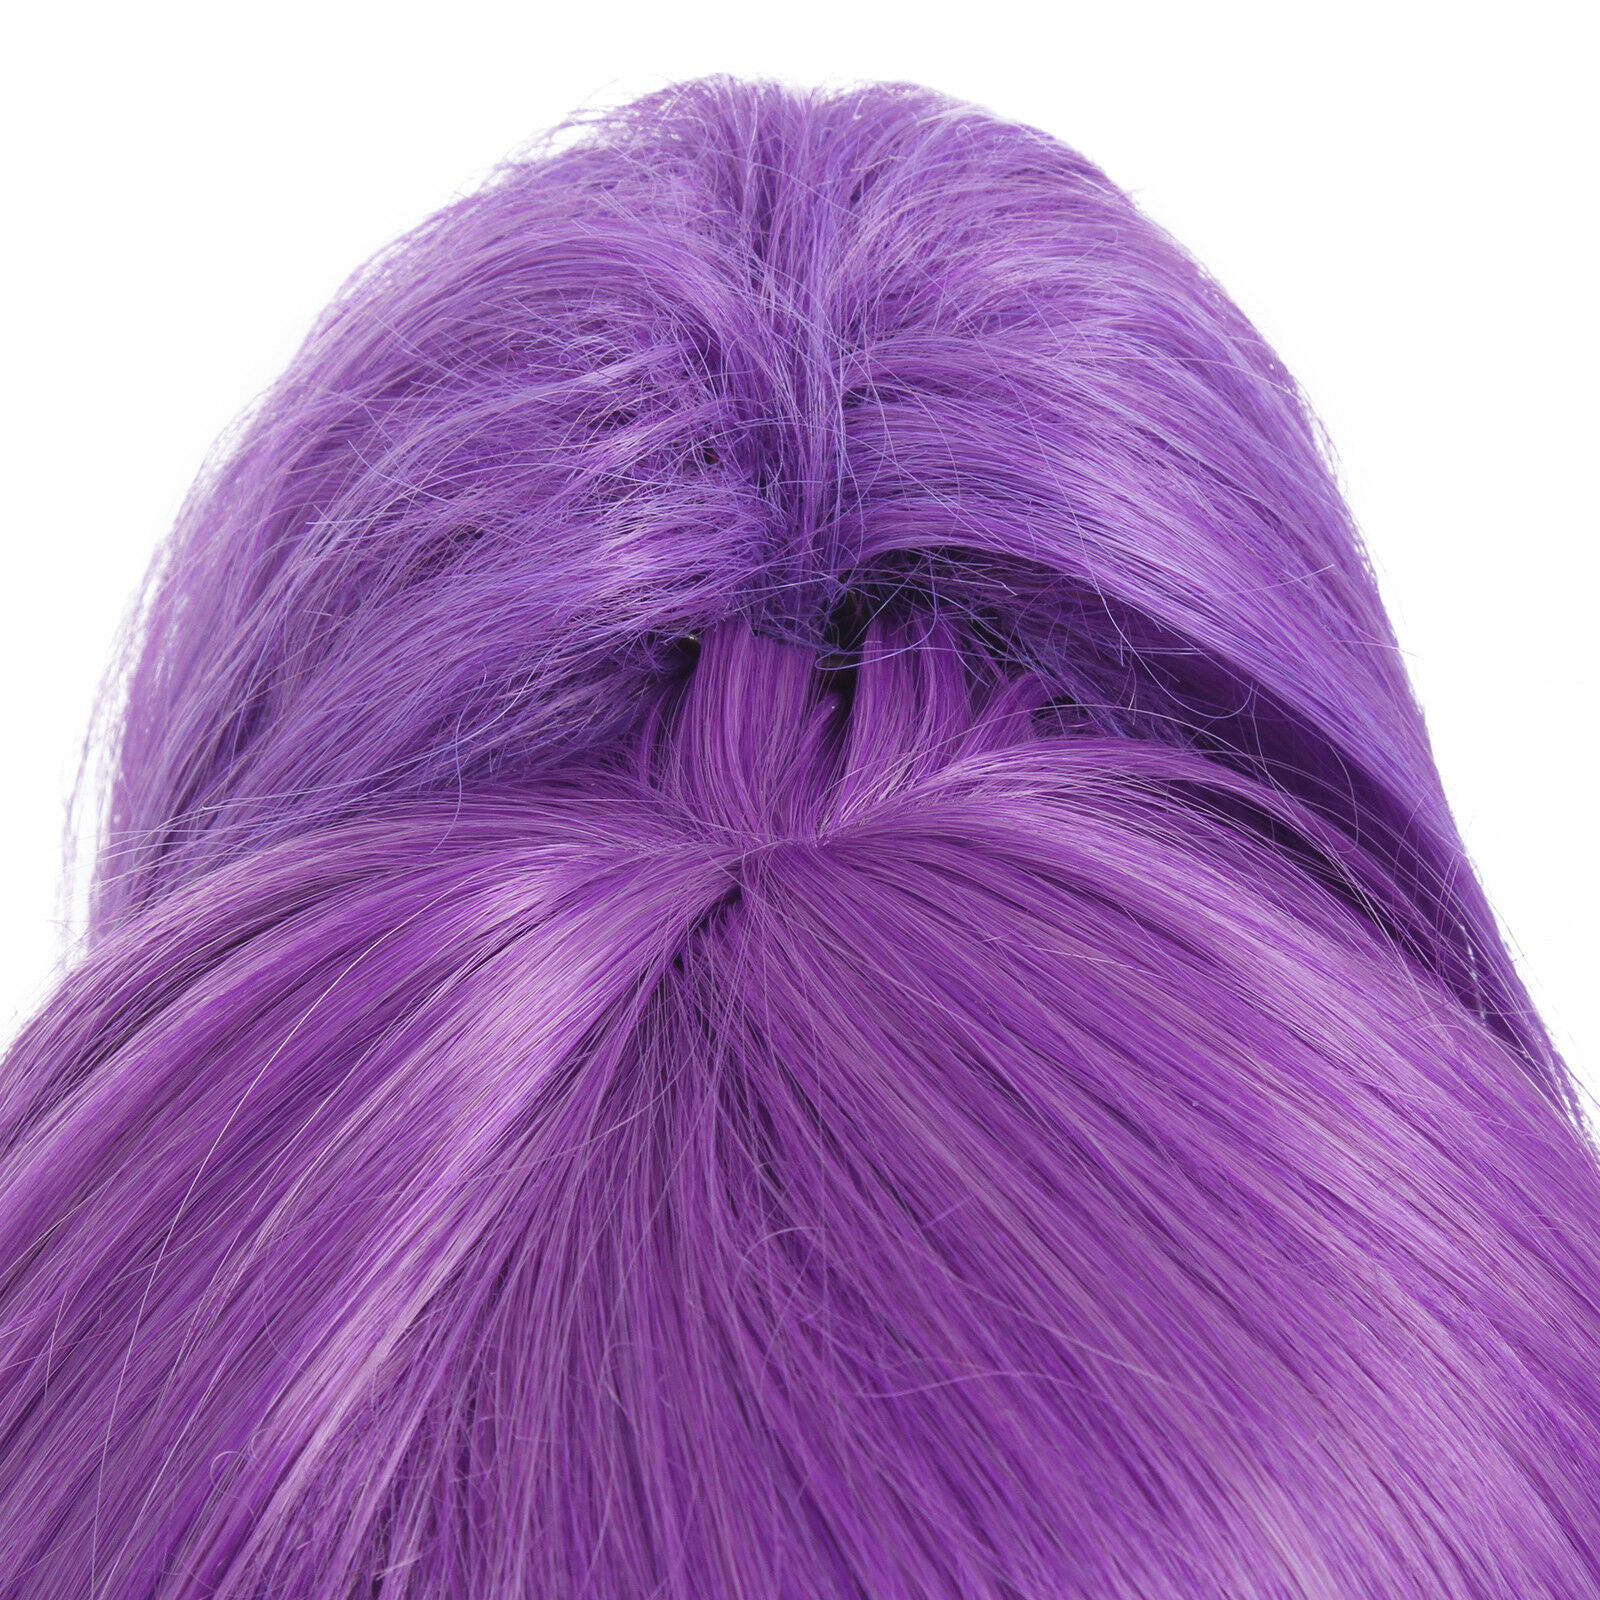 League of Legends Star Guardian Janna Purple Magical Girl Ponytail Cosplay Wigs